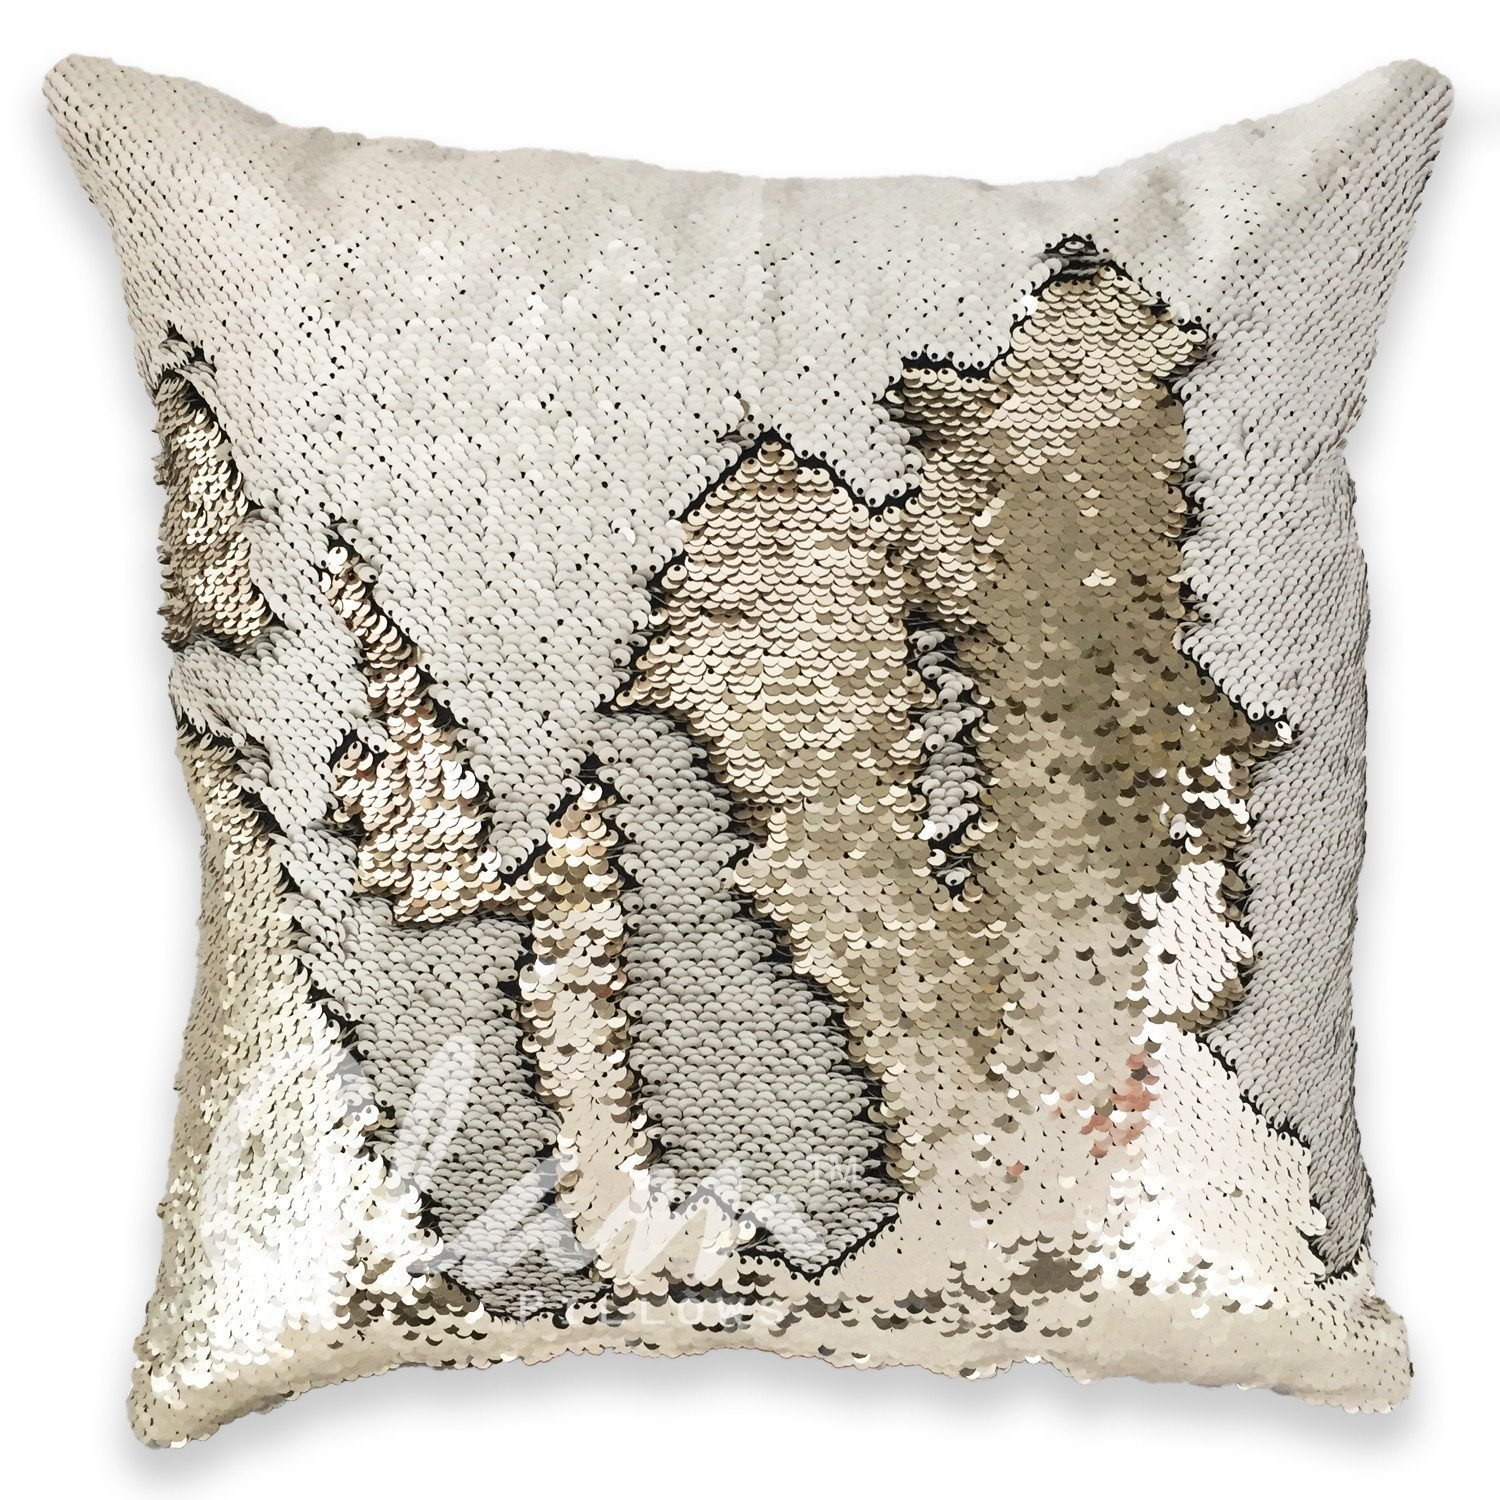 Image of Ivory & Beige Reversible Sequin Glam Pillow